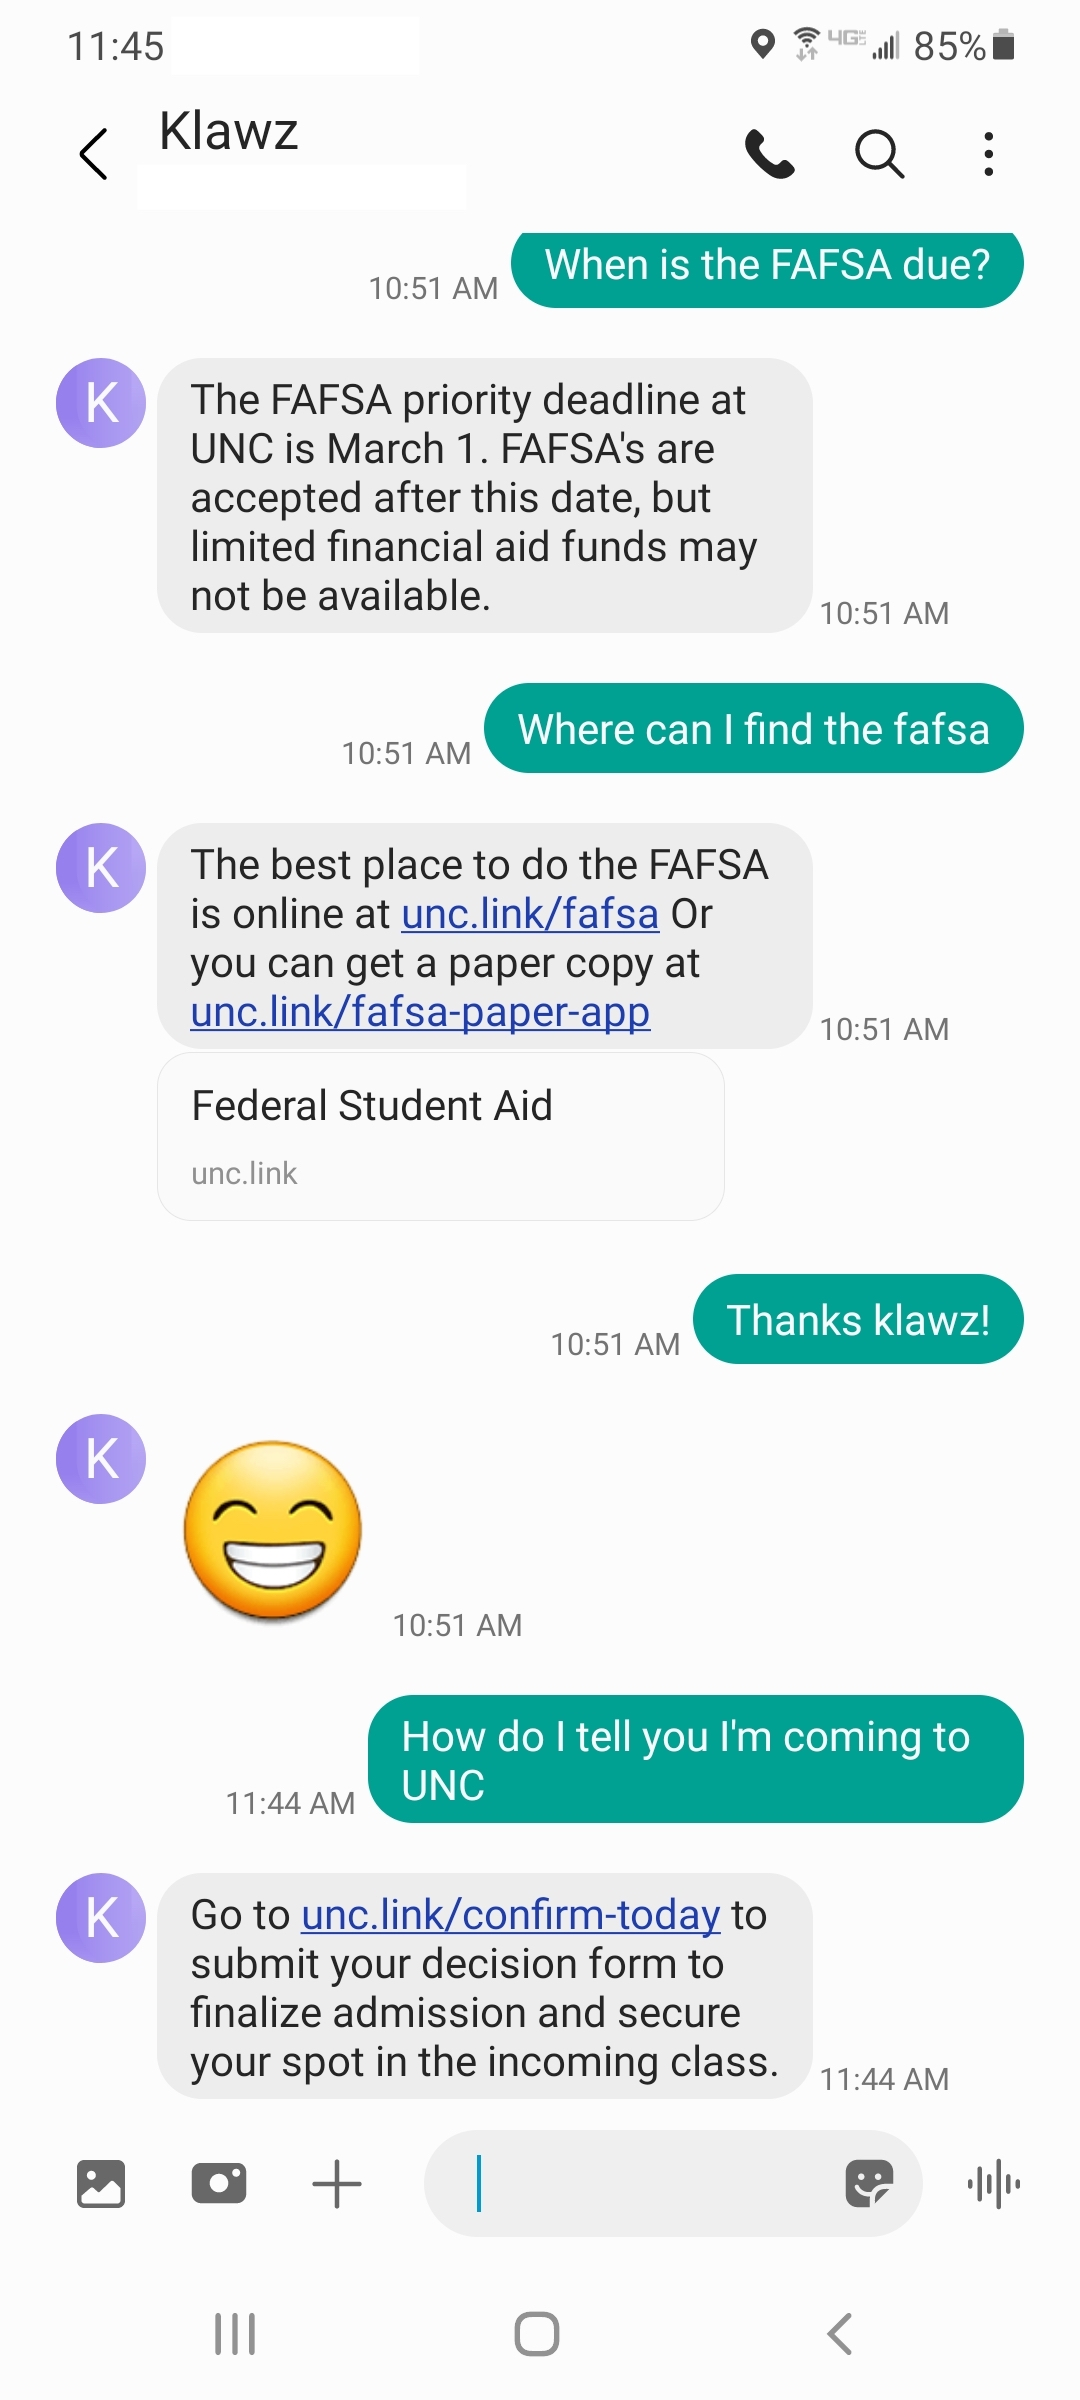 An example of the Klawz Chatbot in action, answering questions about the FAFSA